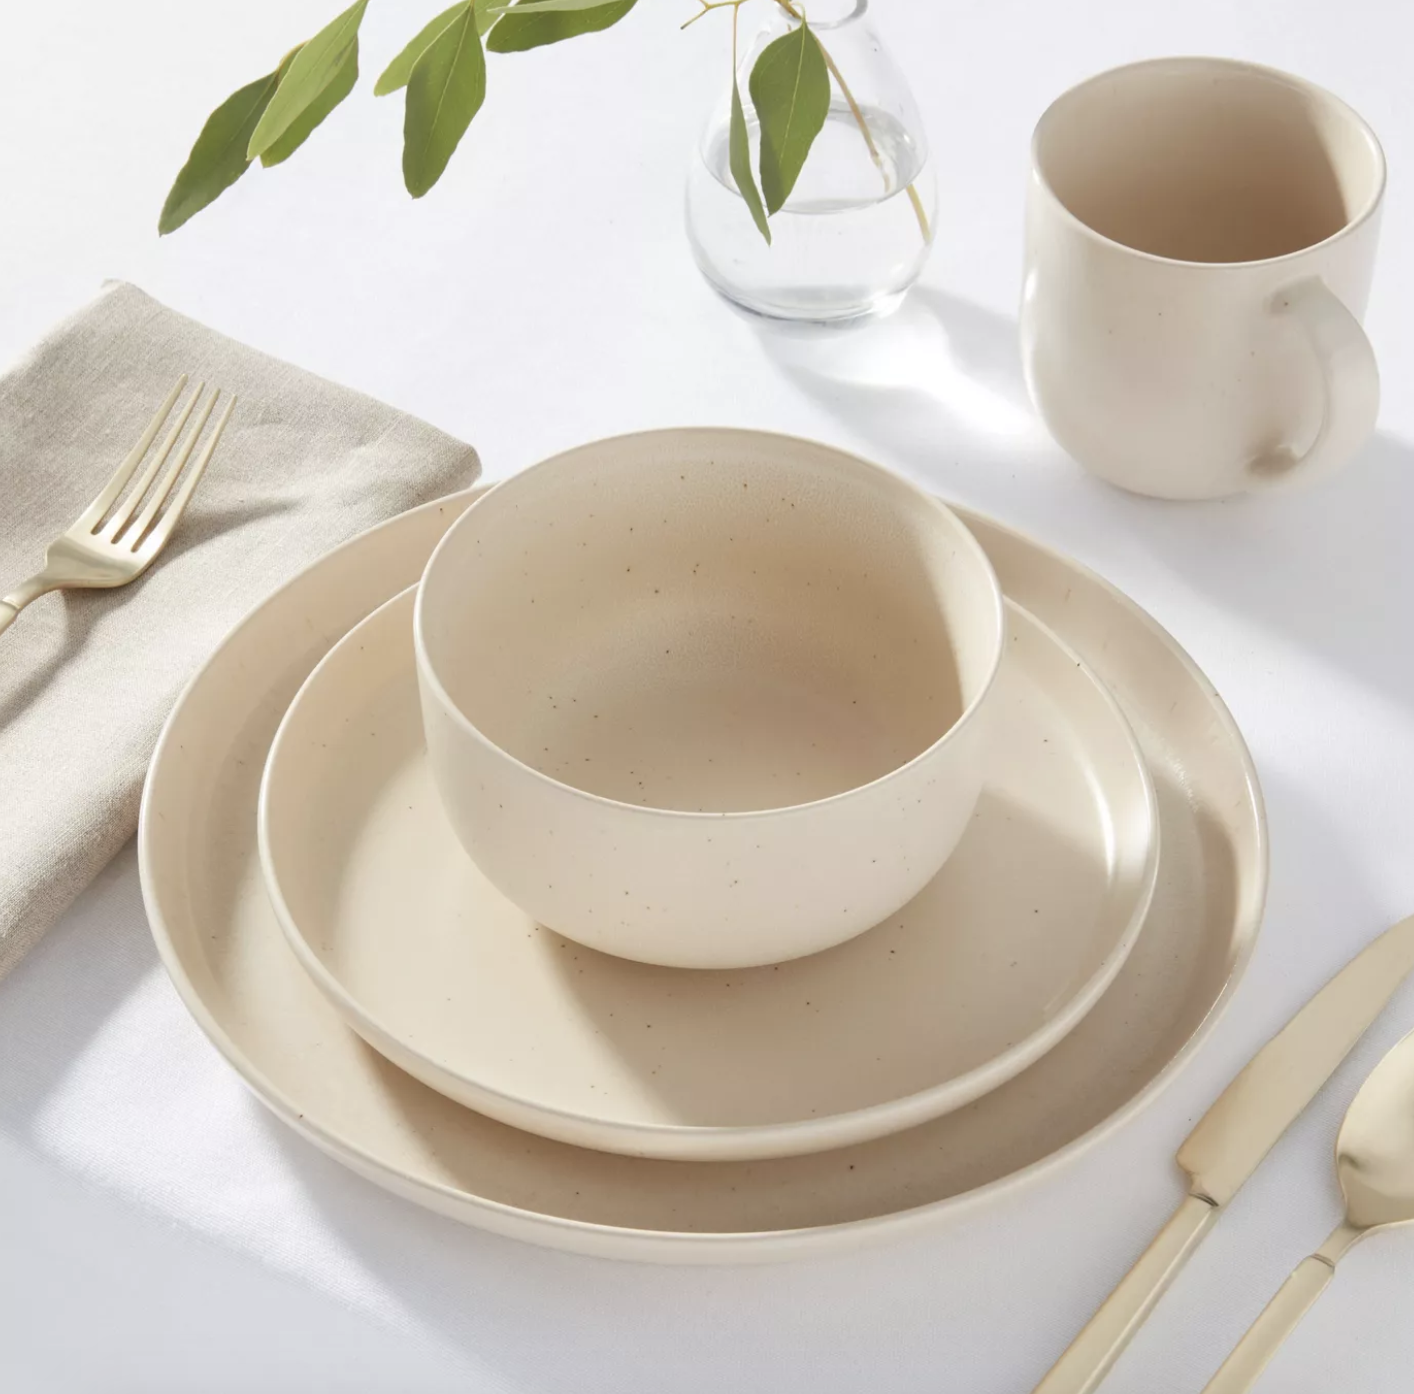 cream colored stoneware set with two plates, bowls, and mugs